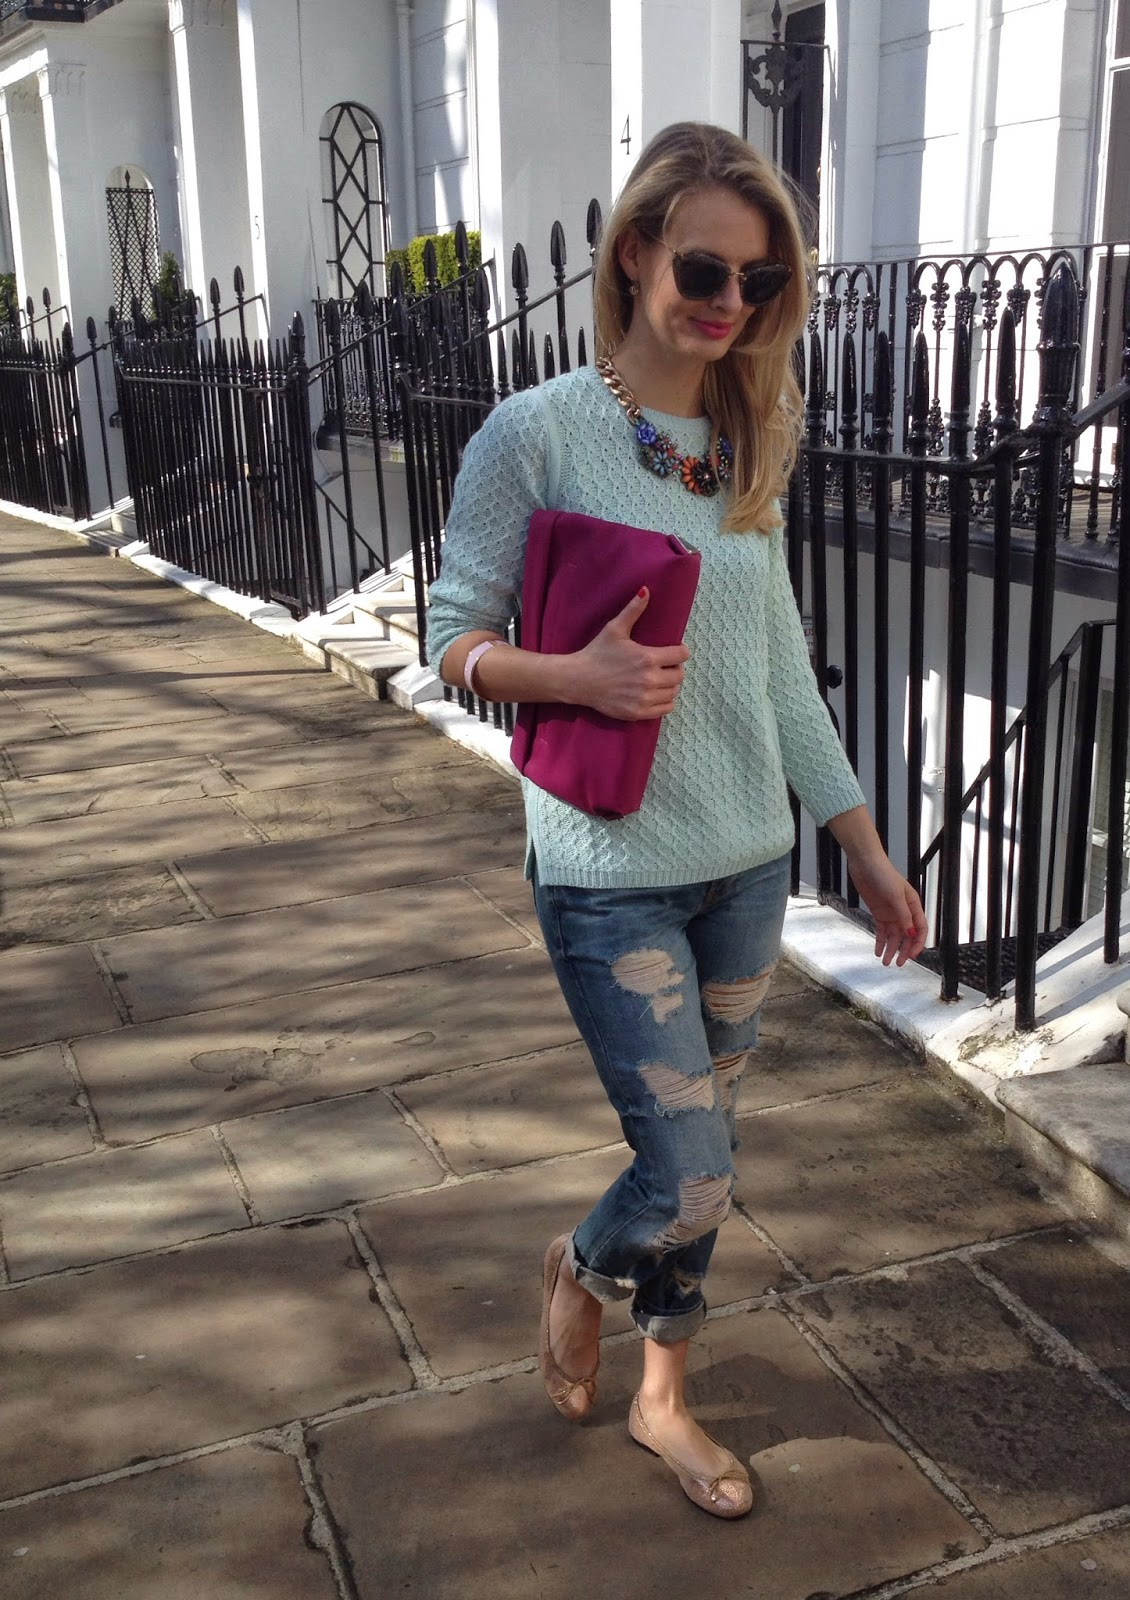 chrissabella, chrissabella blog, street style, outfit of the day, weekend attire, relaxed outfit, boyfrined jeans, pink bag, pink clutch, mint jumper, mint knitted jumper